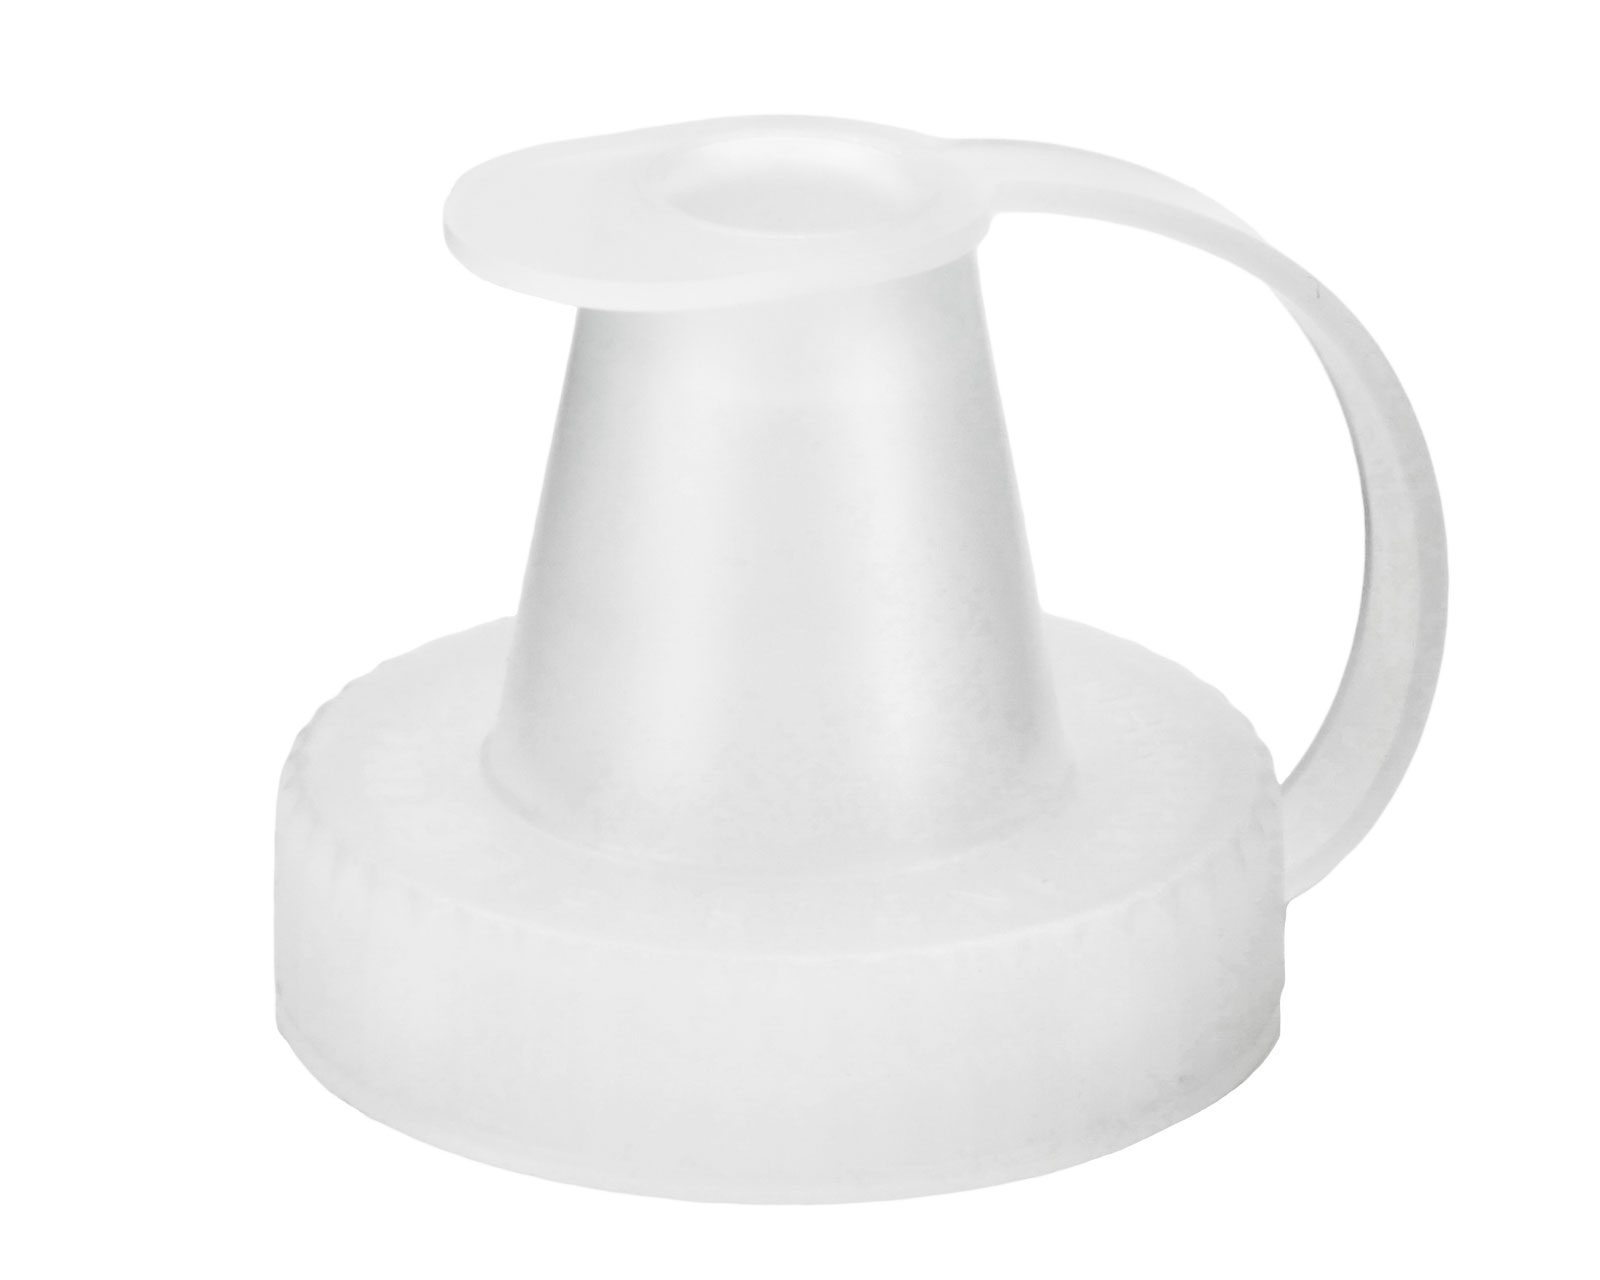 Funnel for Toner Powder, Toner Refills